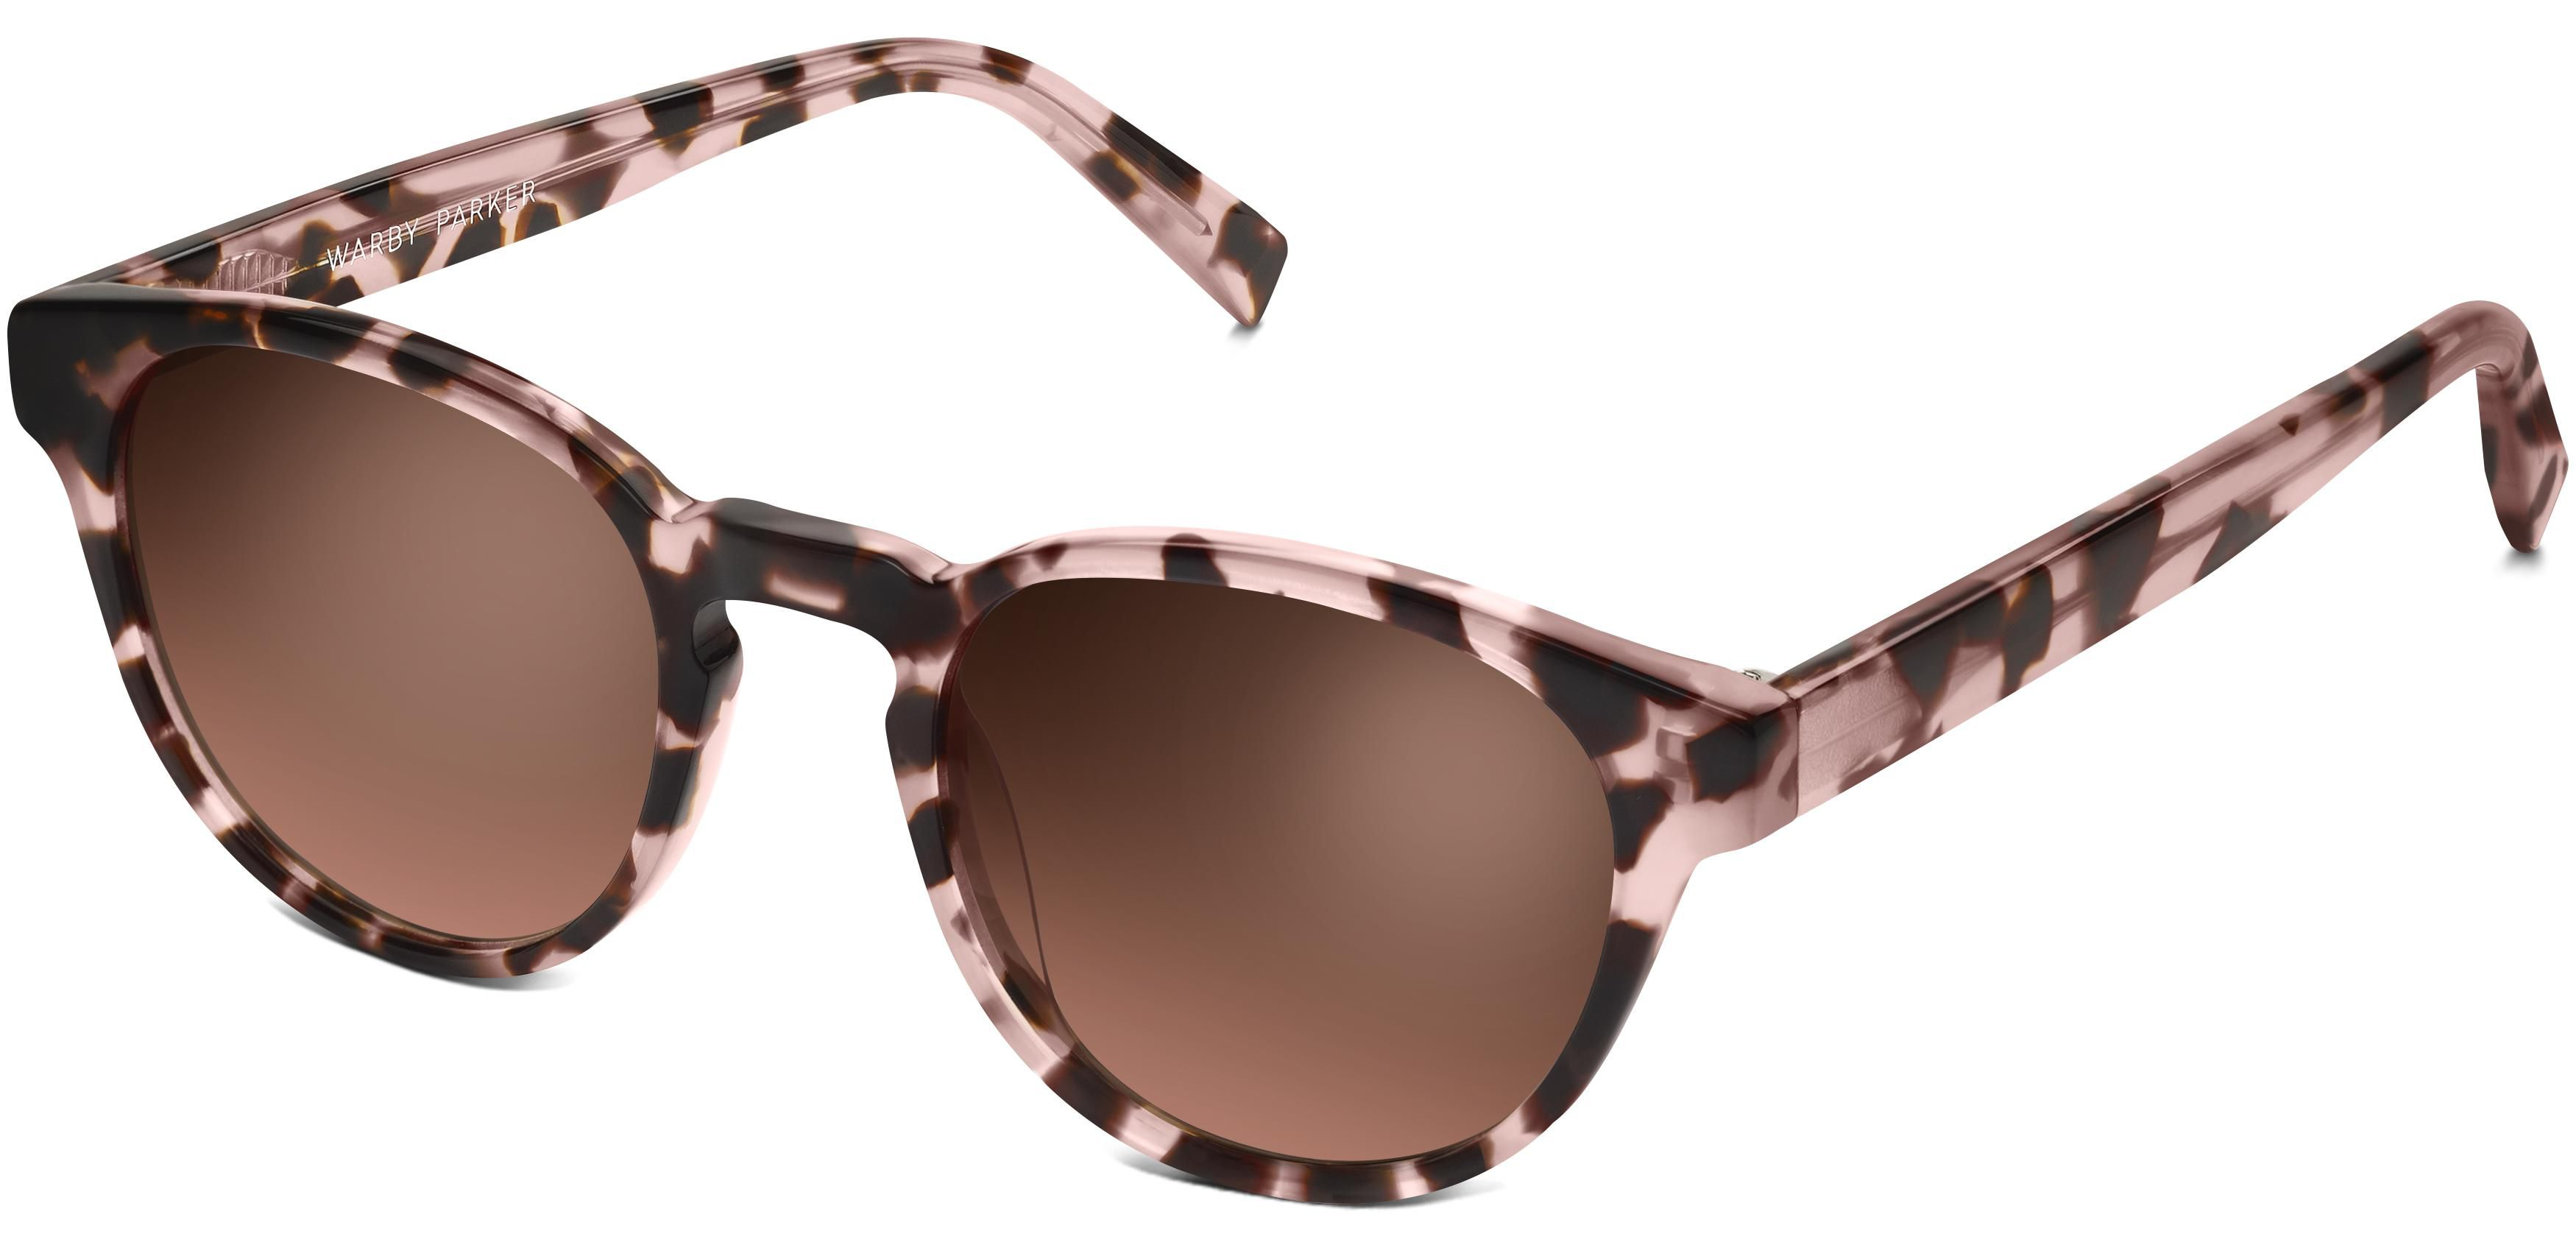 81489f11d0f5c Percey Sunglasses in Petal Tortoise with Flash Reflective Brown Gradient  lenses for Men